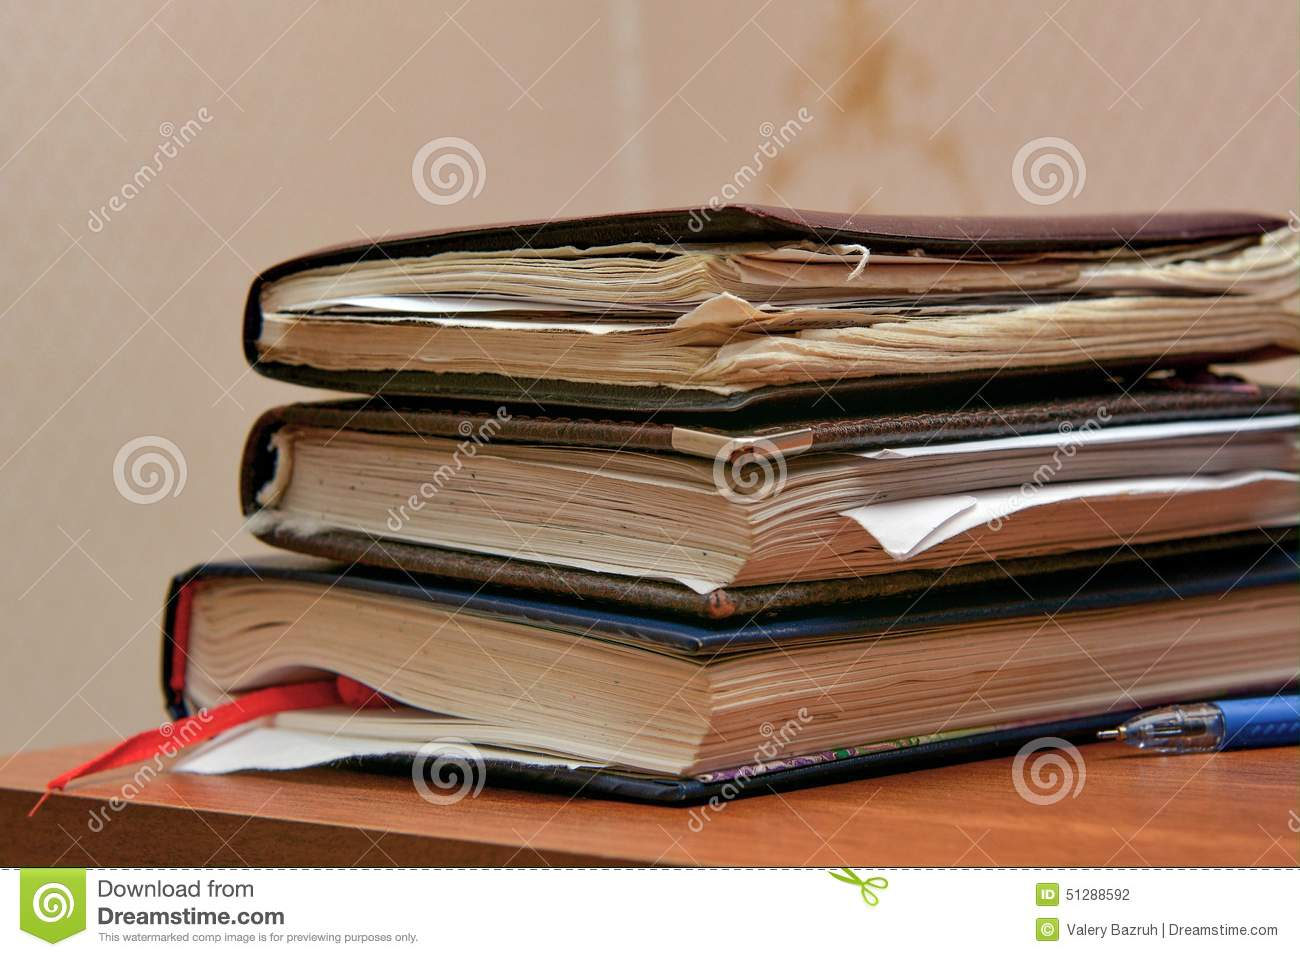 Pile of old notebooks of the student on table